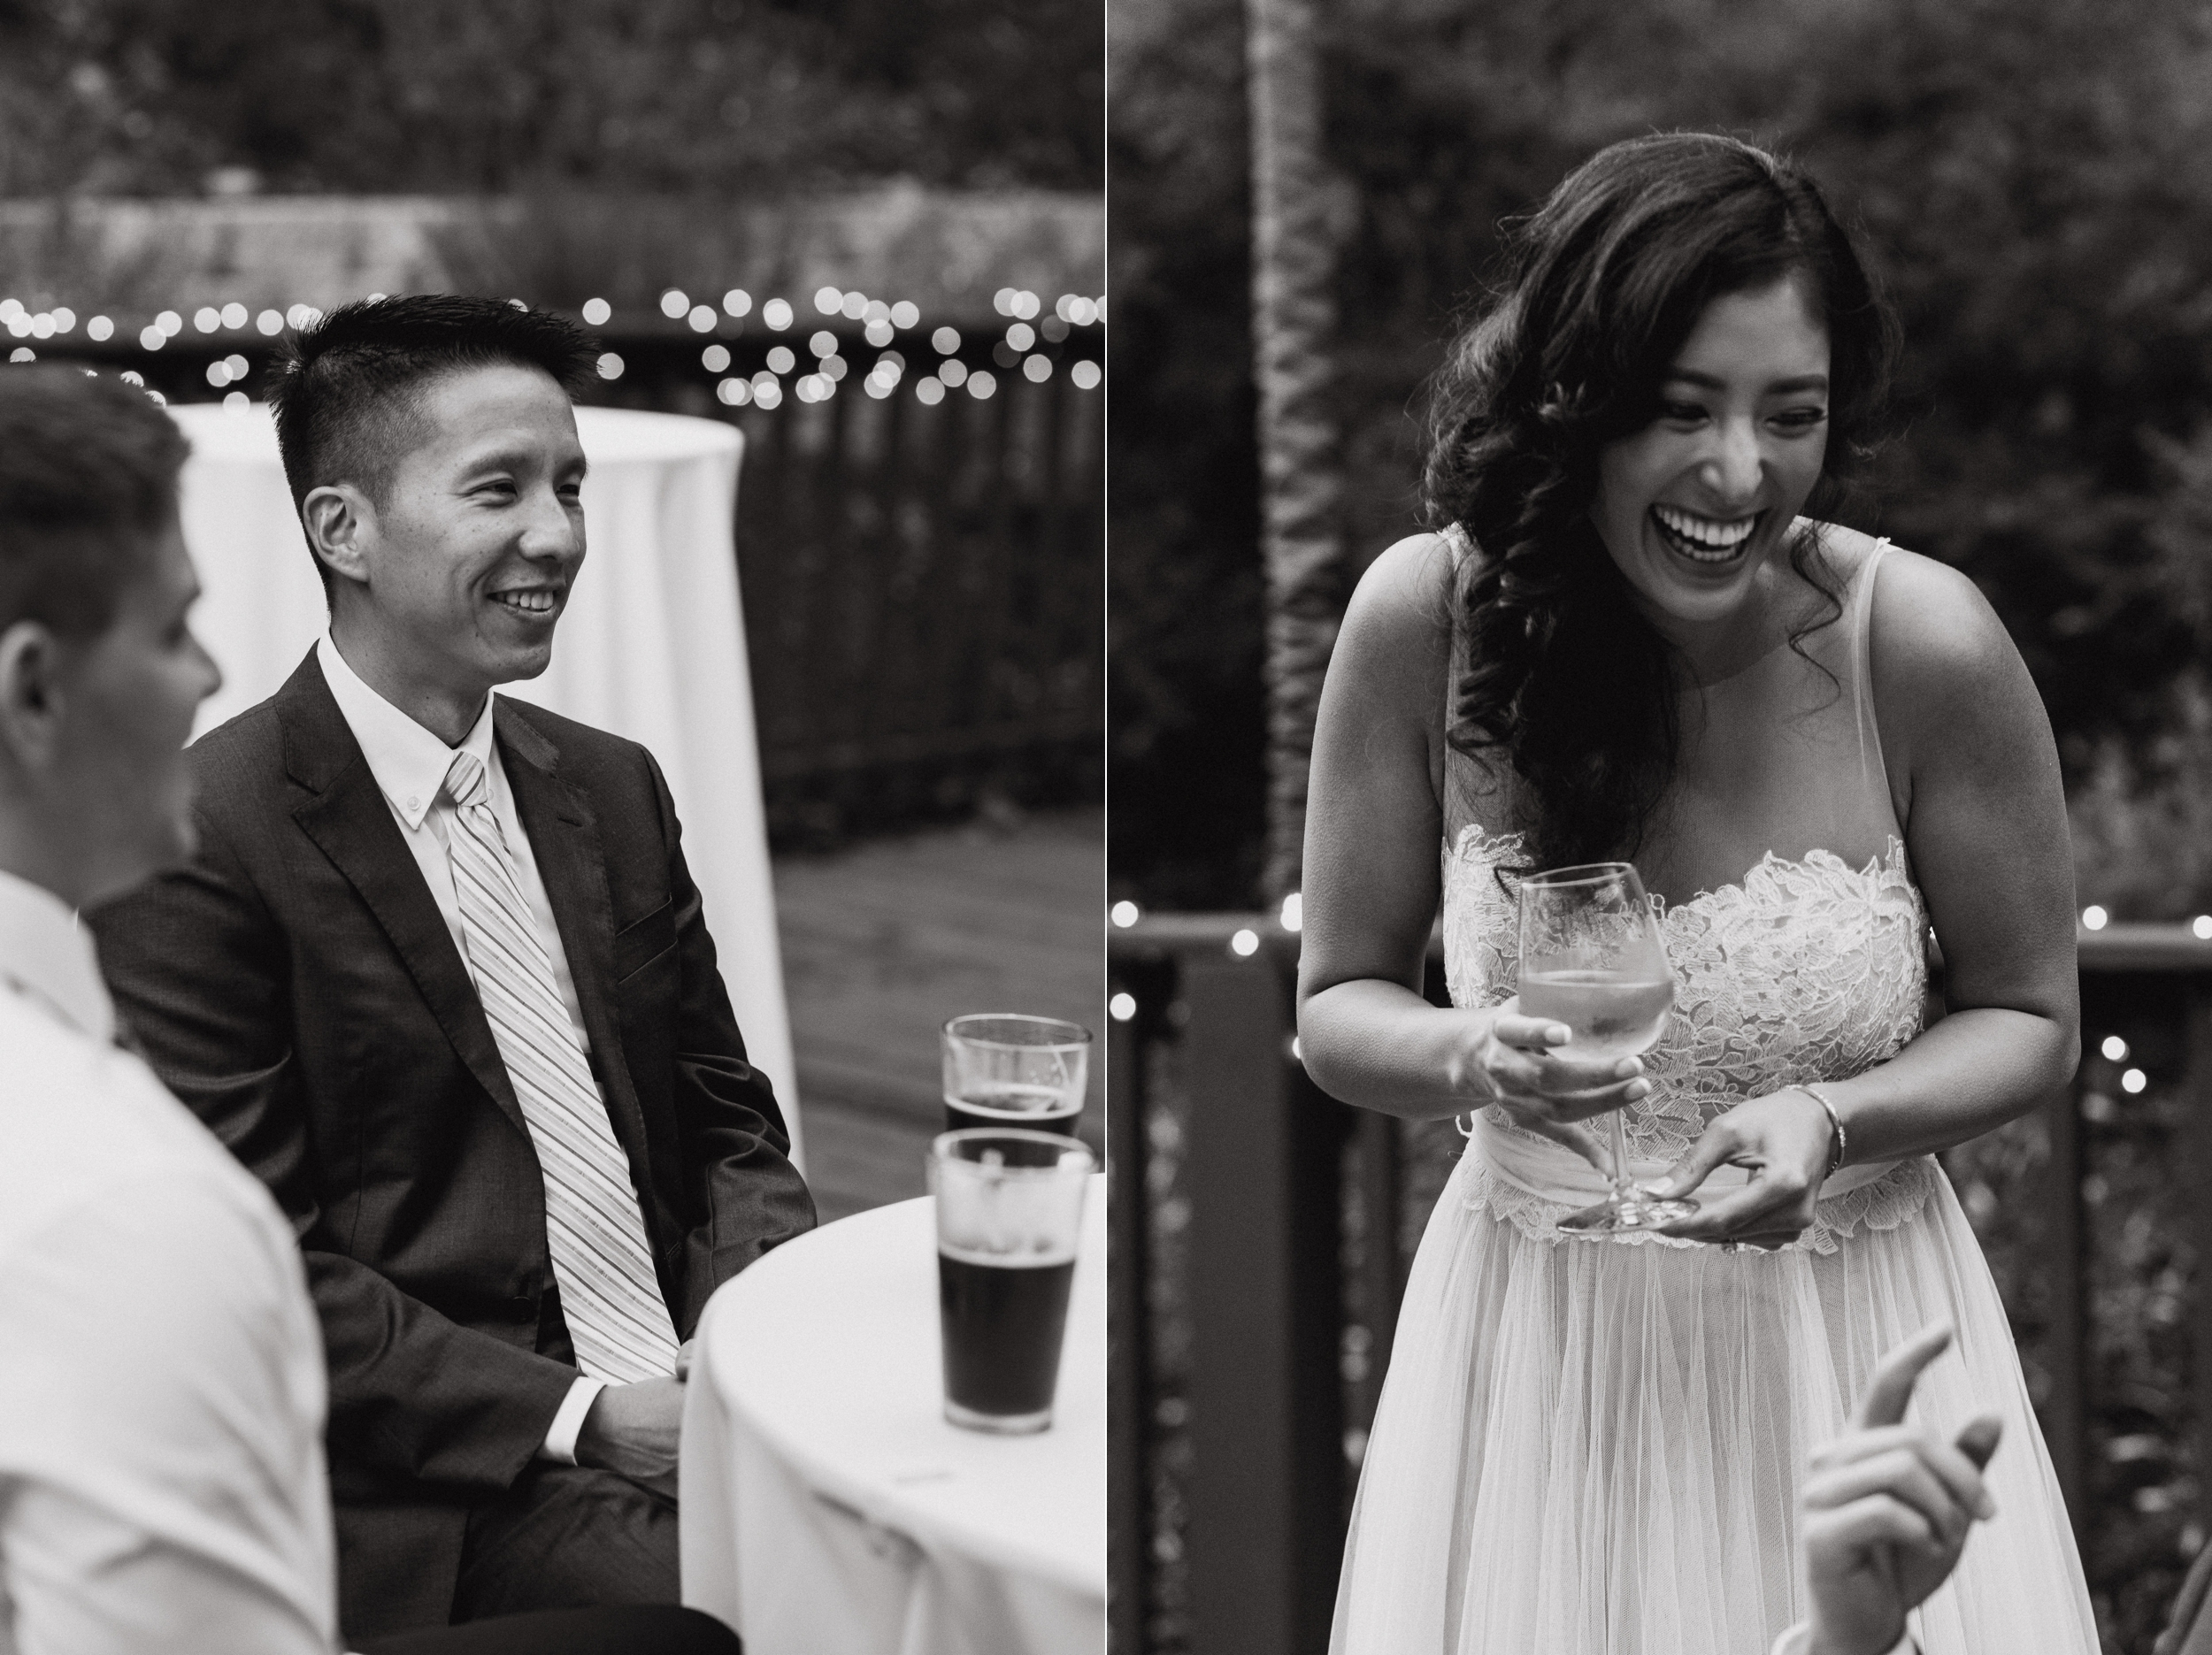 54-sunol-elliston-vineyard-wedding-vivianchen-421_WEB.jpg